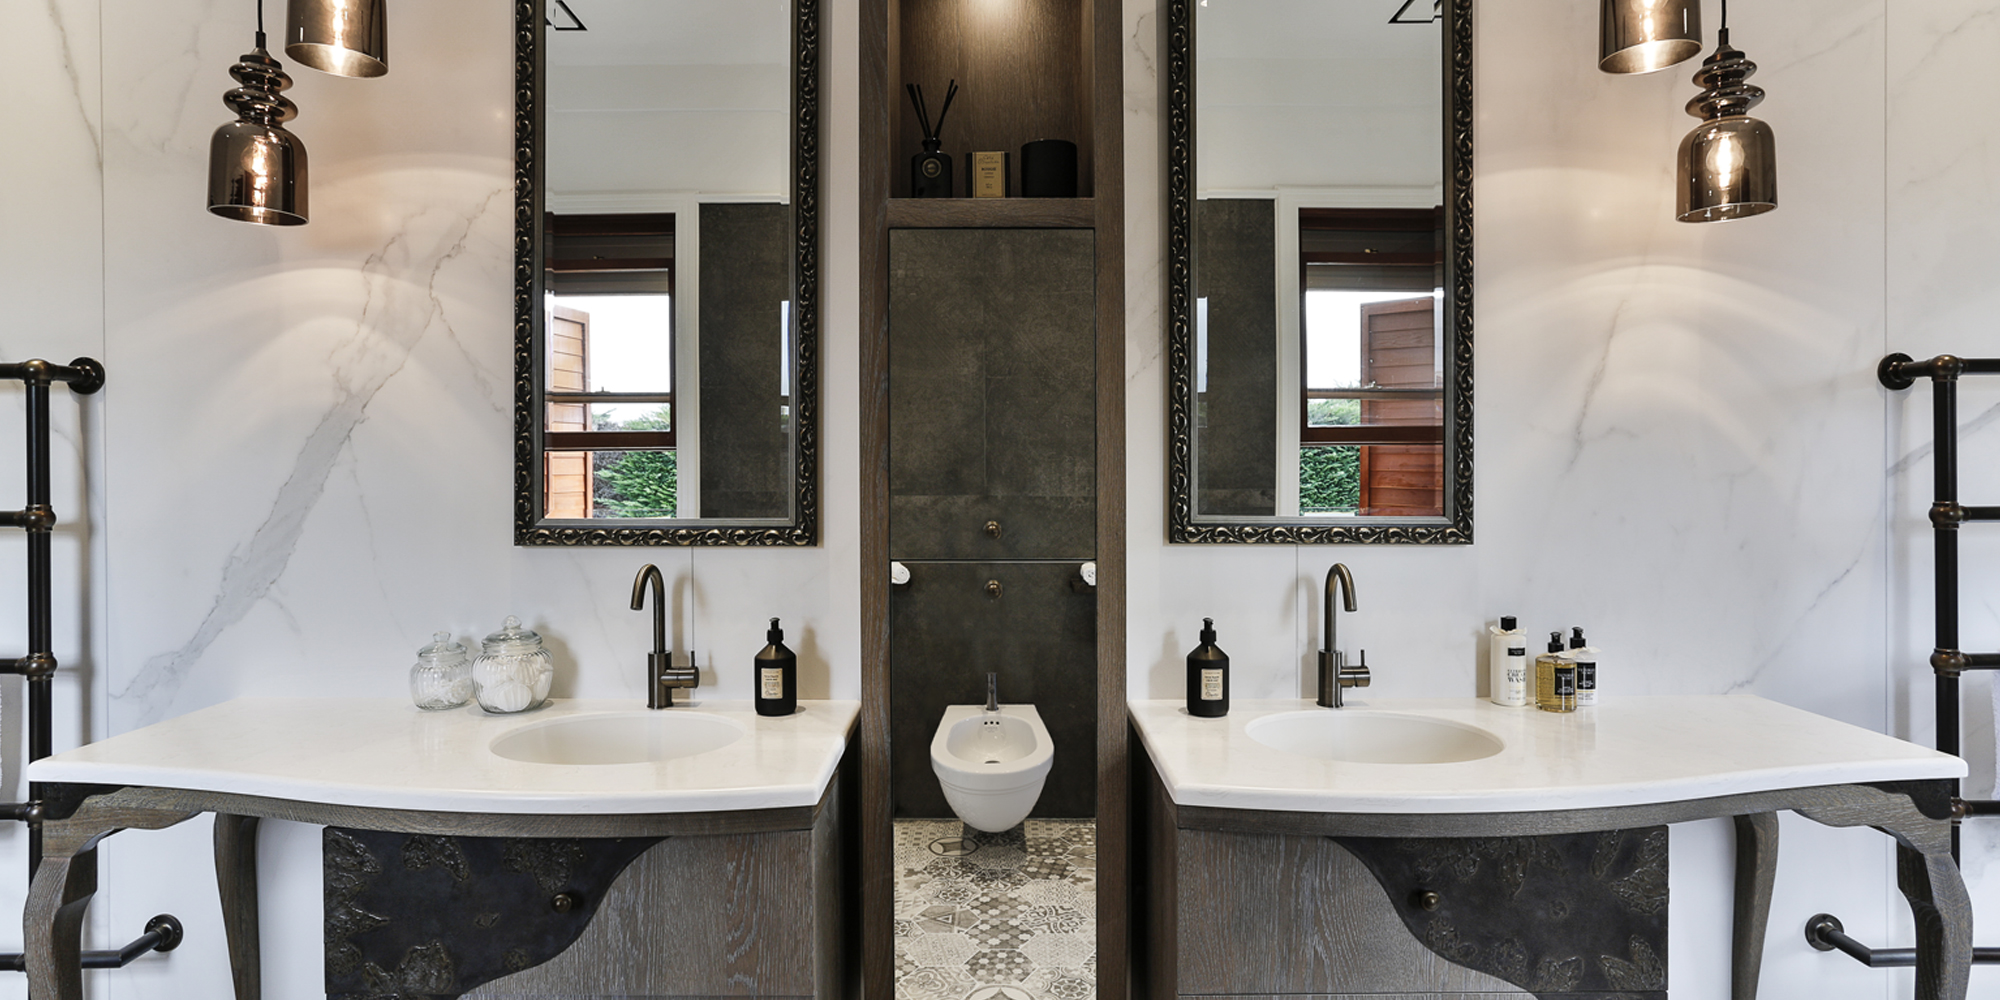 KBD-Italianate-Bathroom-4.jpg